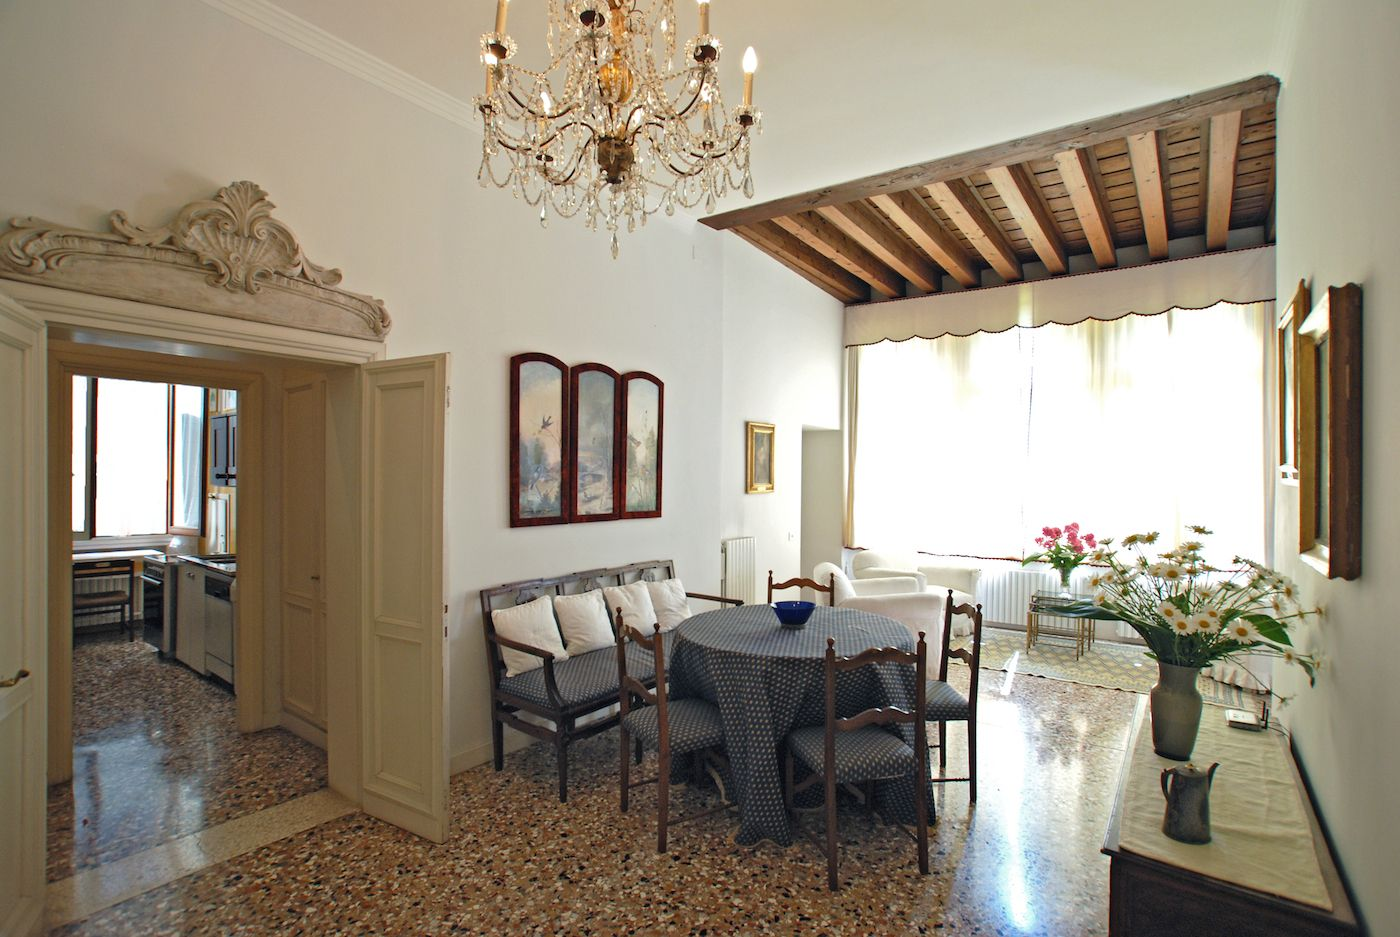 living / dining room of the Rezzonico Palace apartment